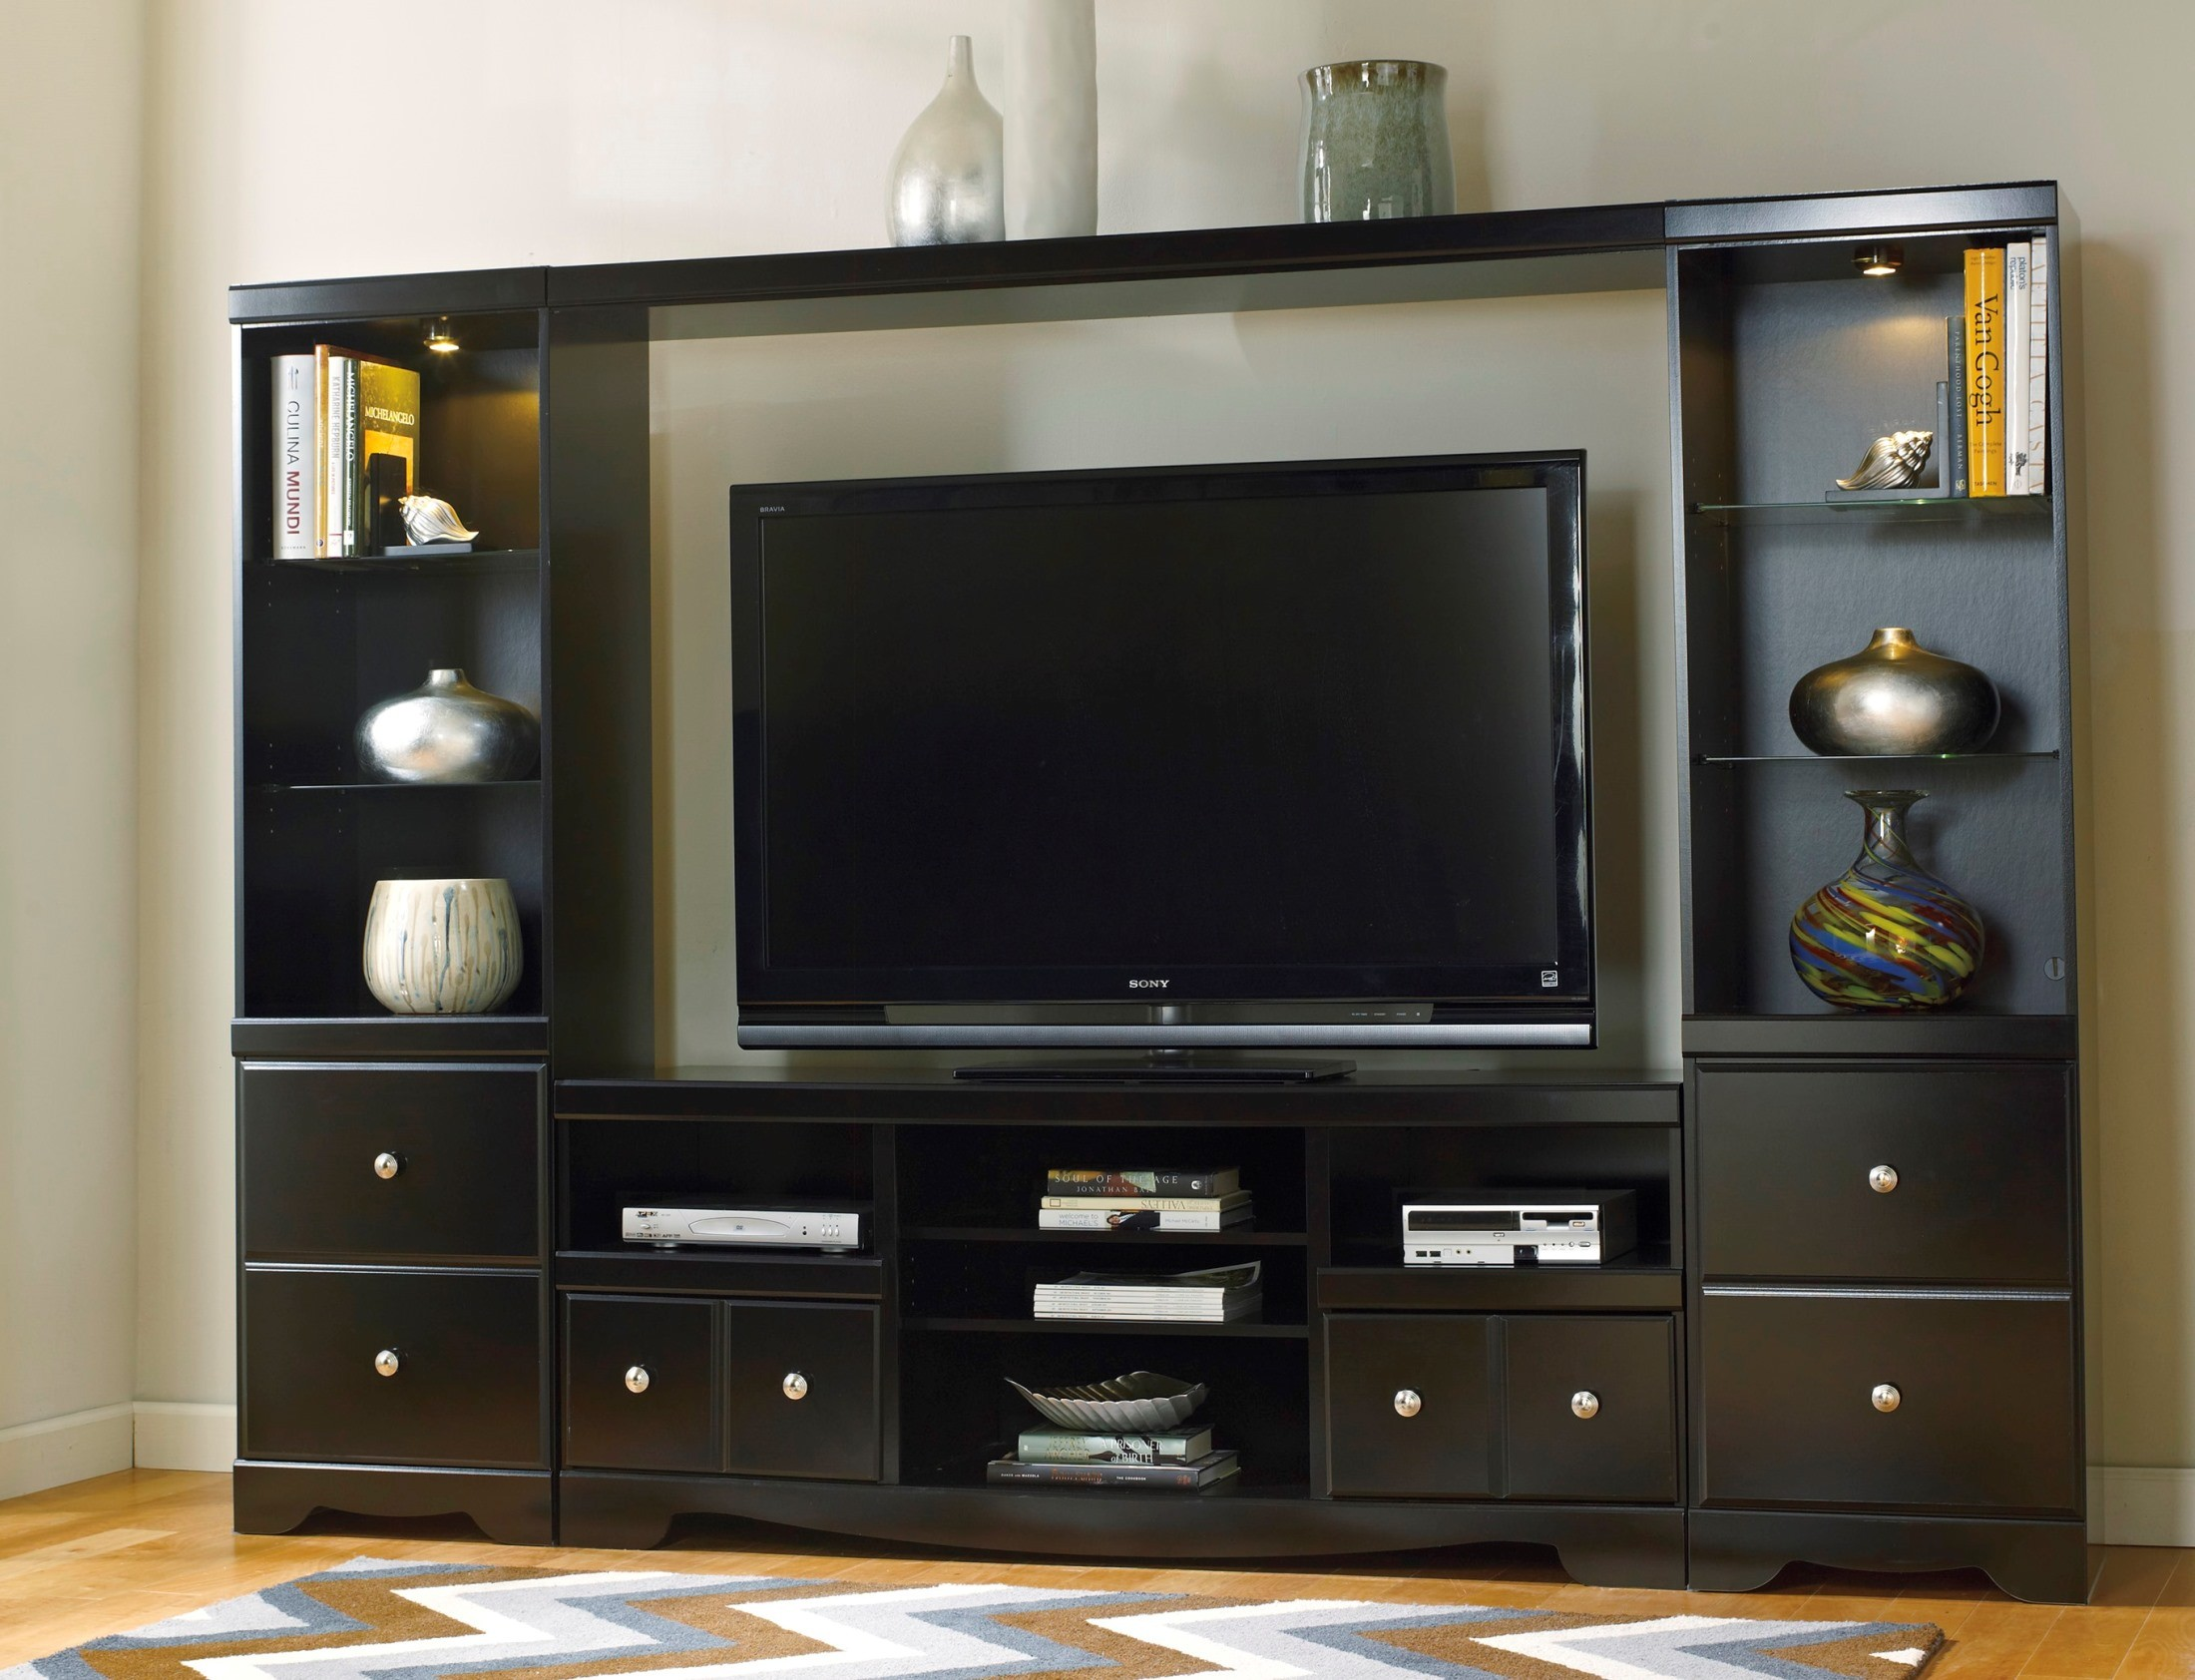 Shay LG TV Stand from Ashley (W271-68) | Coleman Furniture